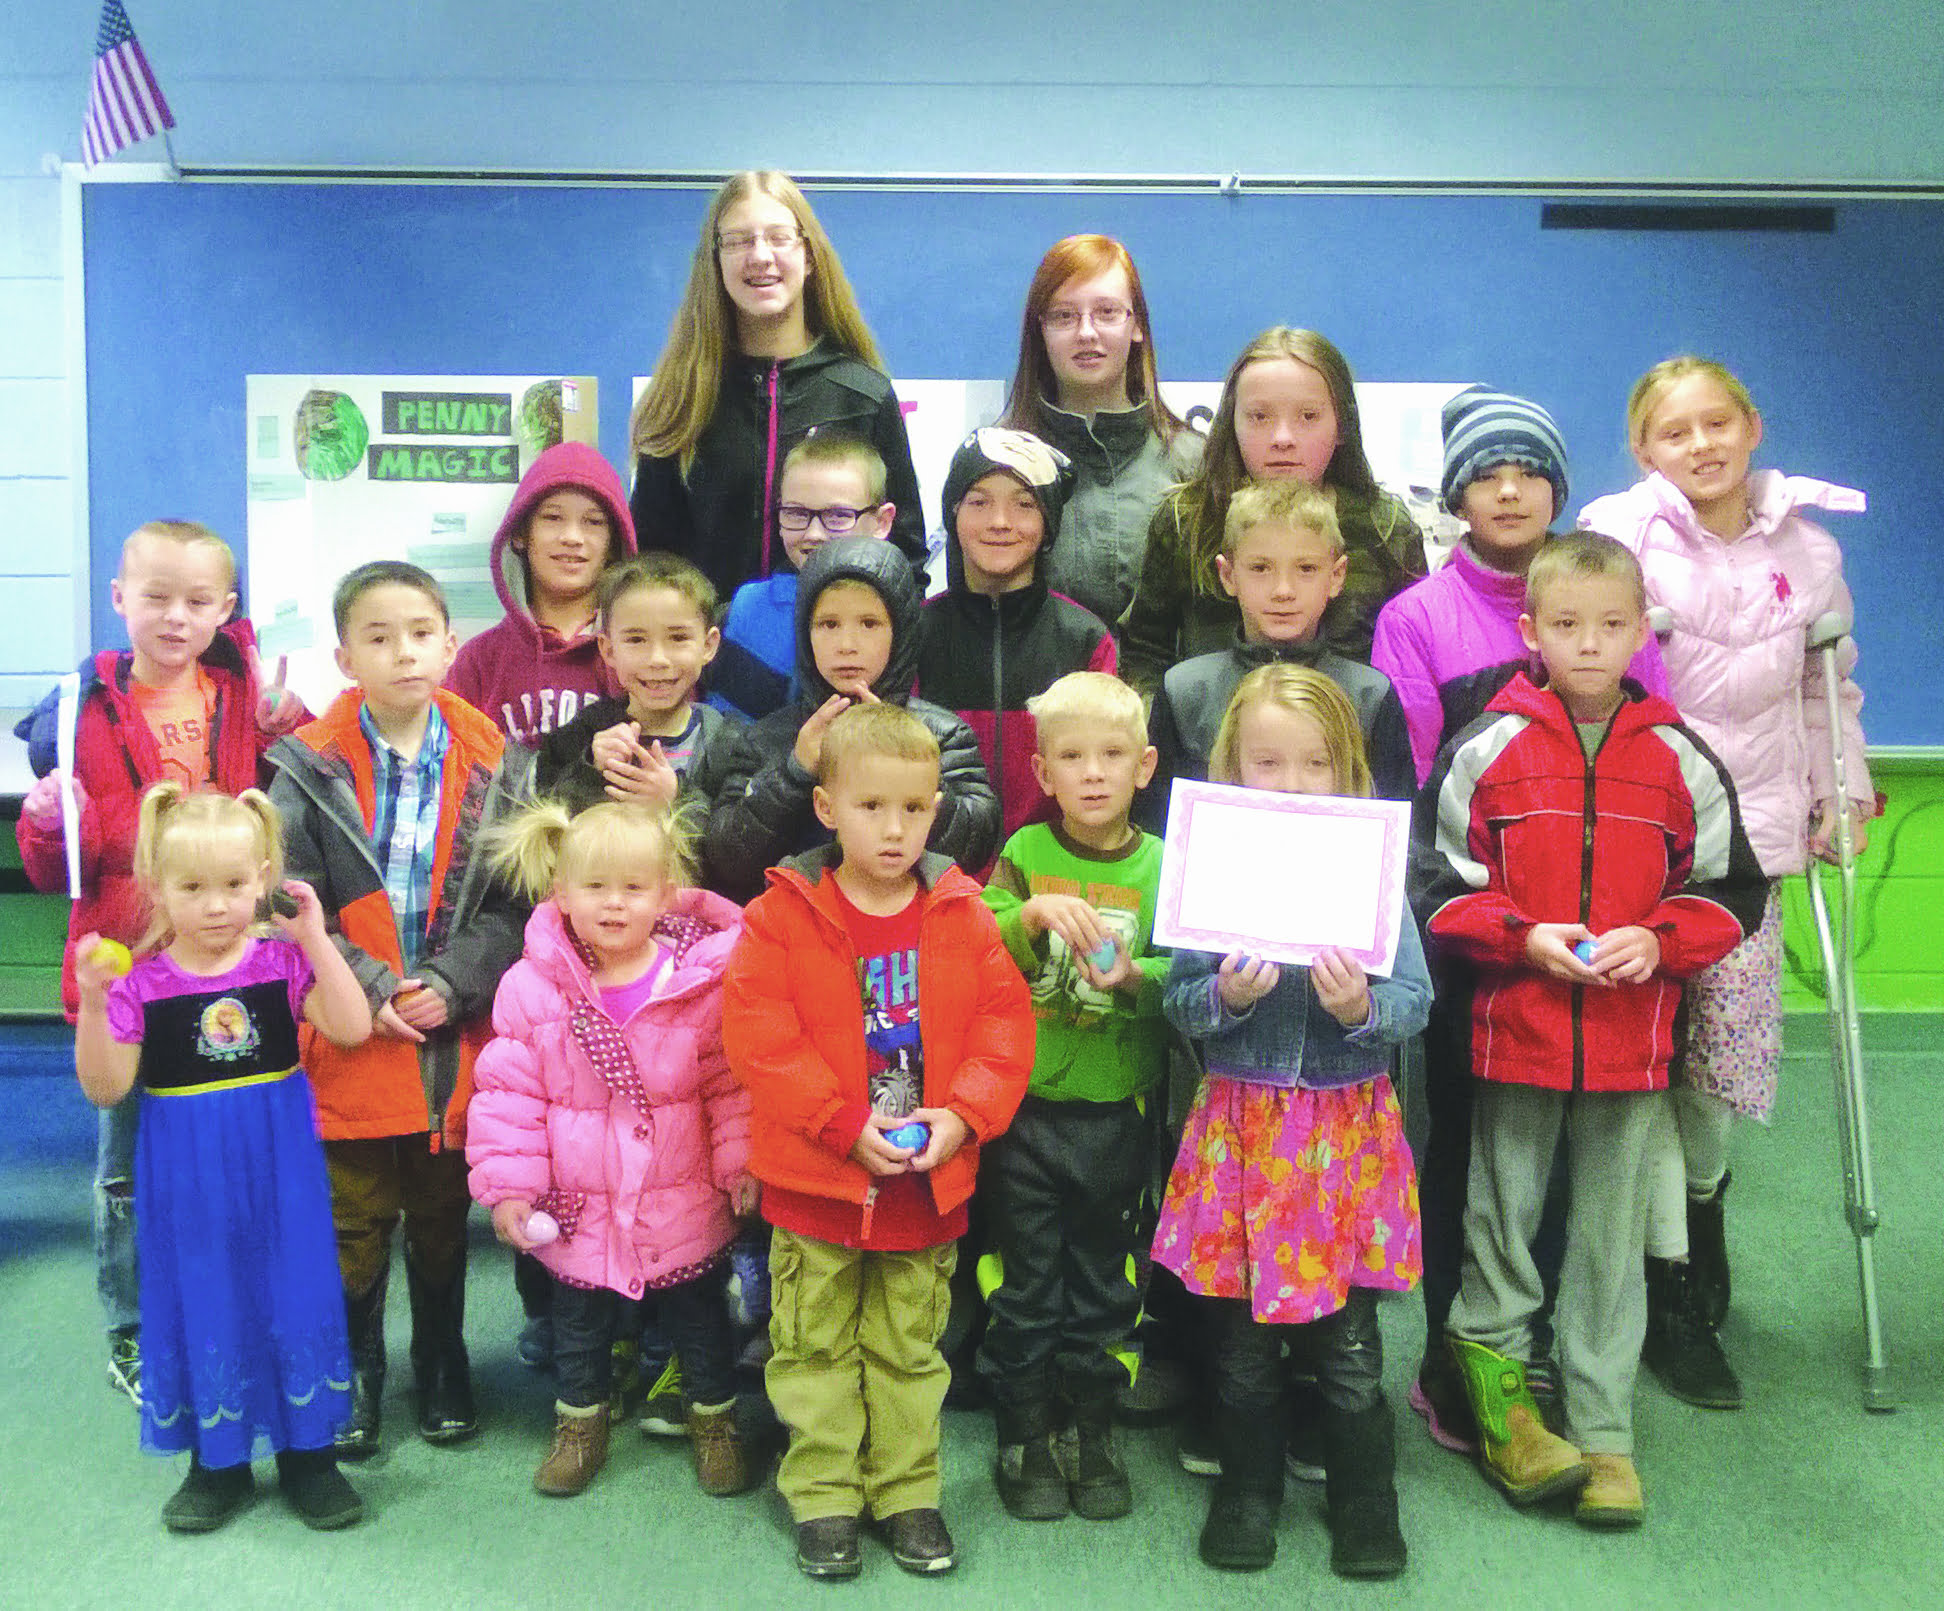 Edgewood homeschool co-op offers non-traditional education